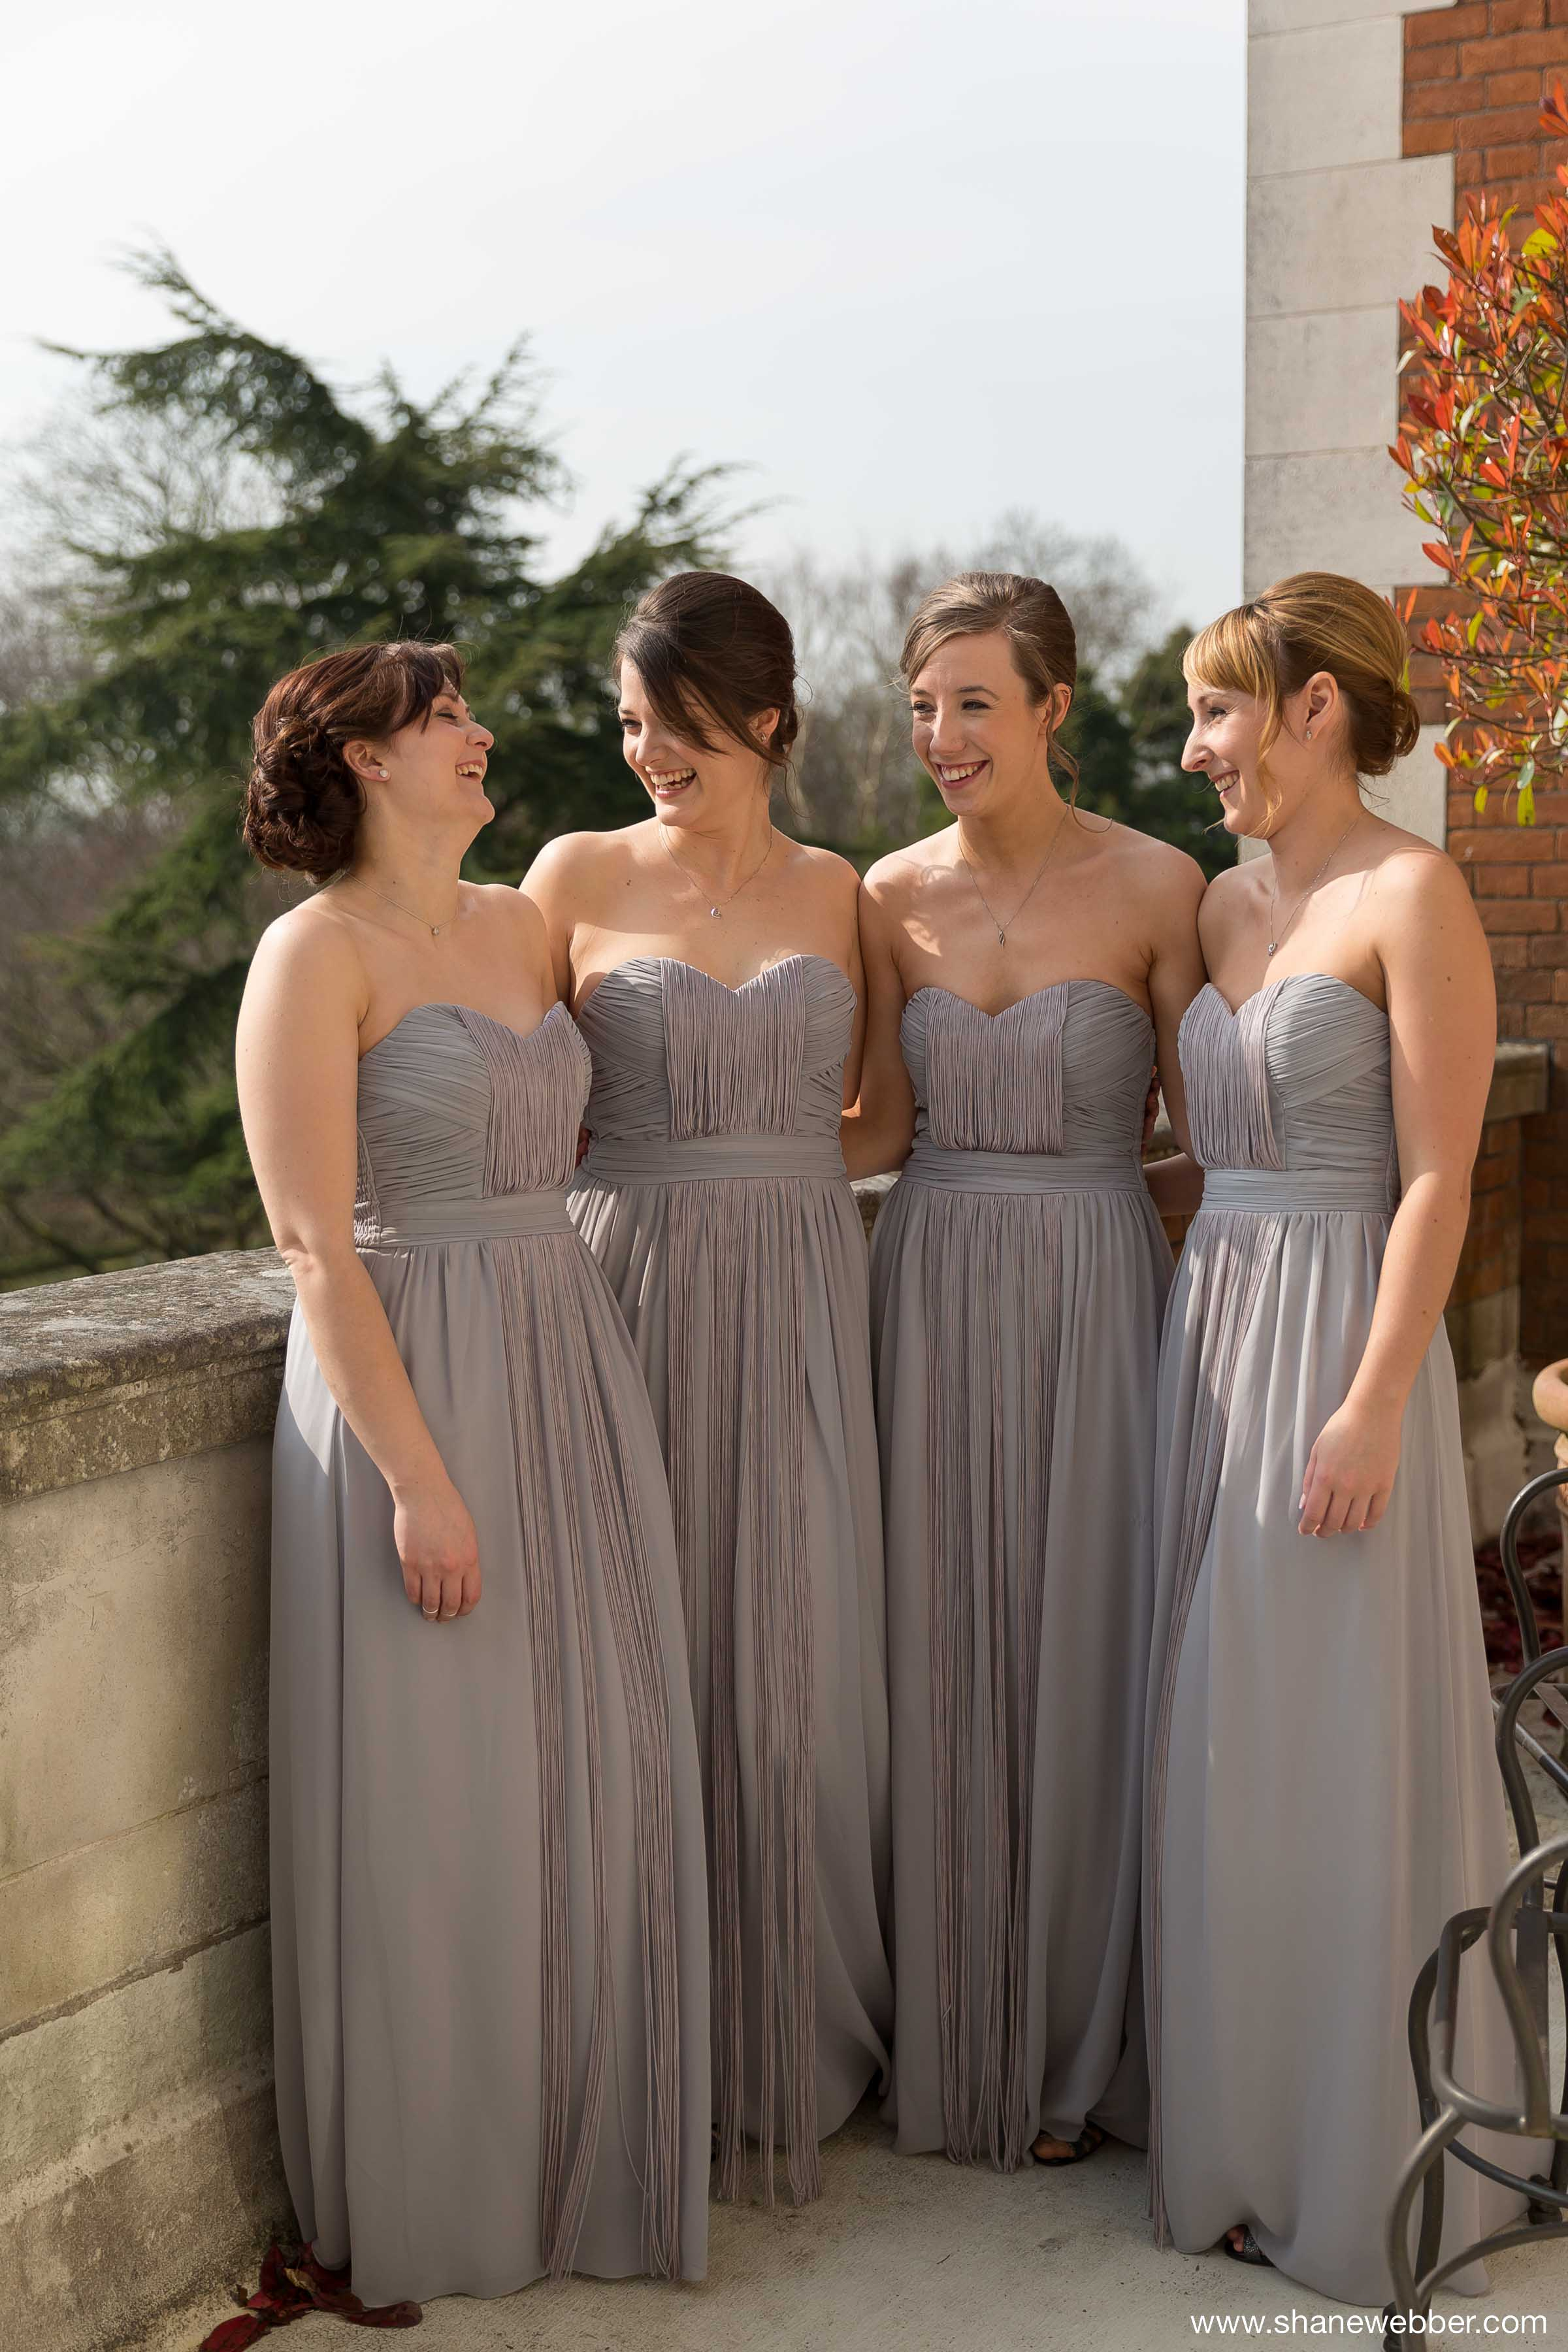 Bridesmaids in light grey dresses